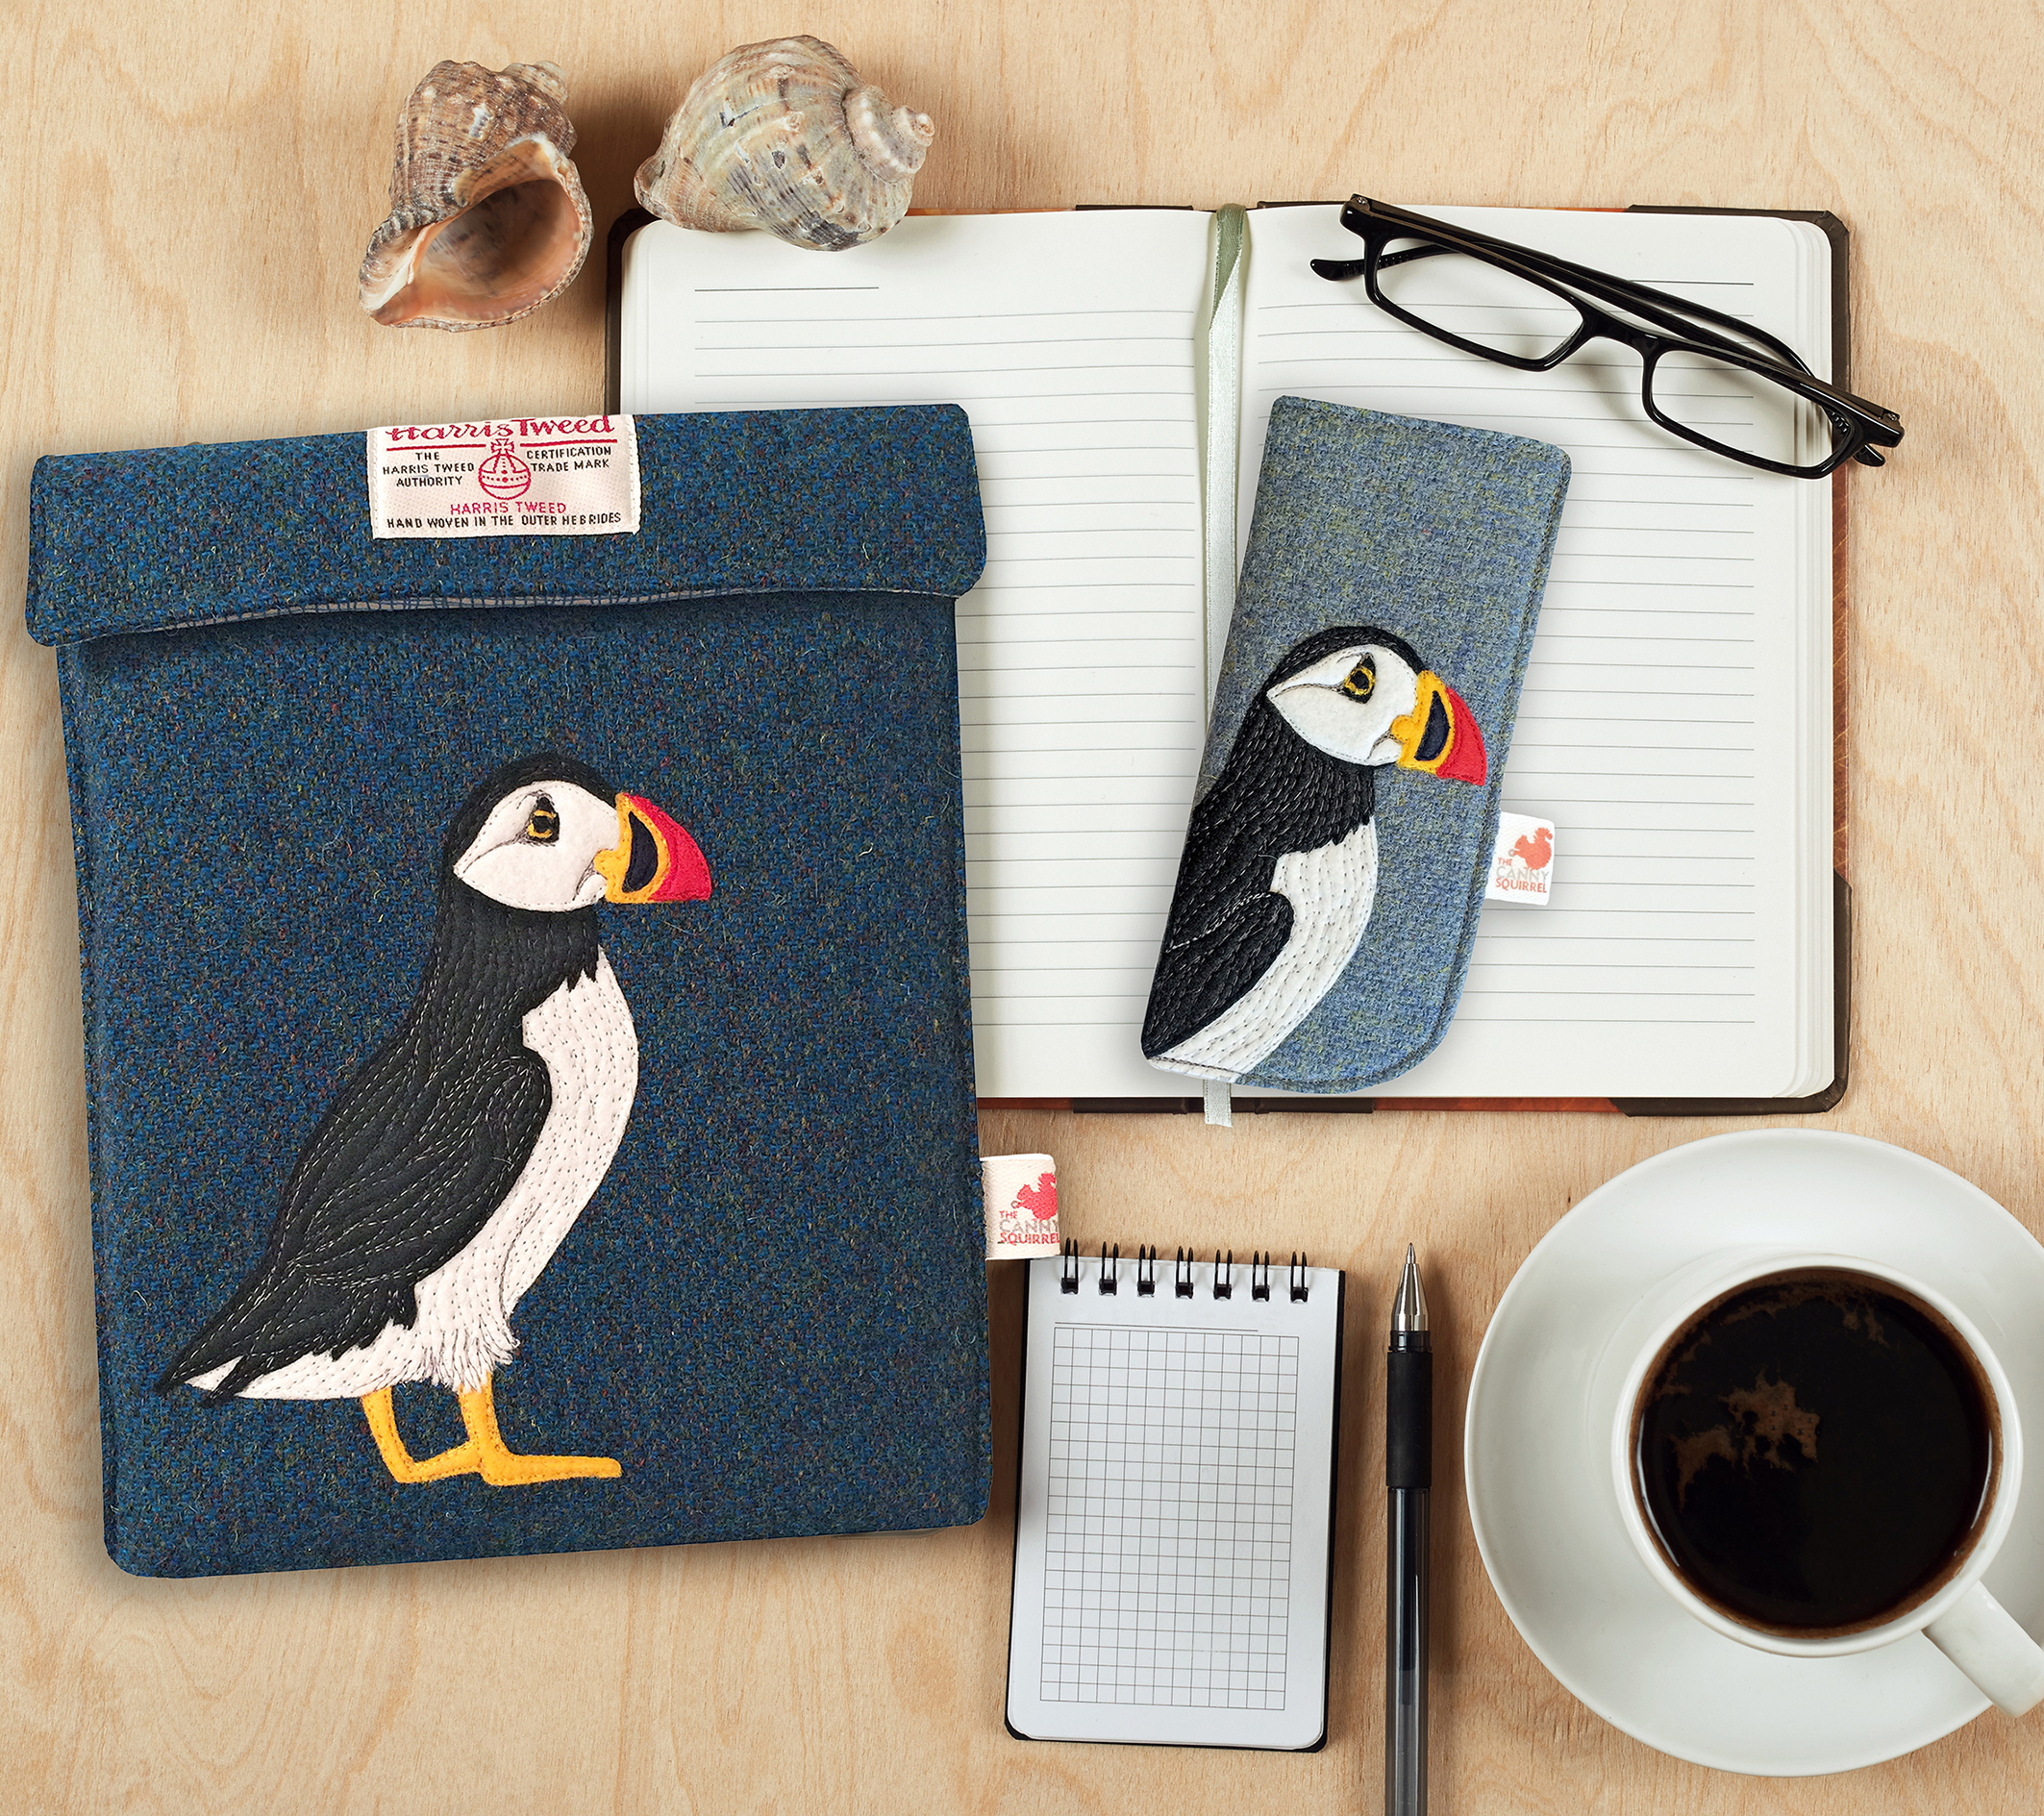 Harris Tweed iPad and glasses case featuring an embroidered puffin